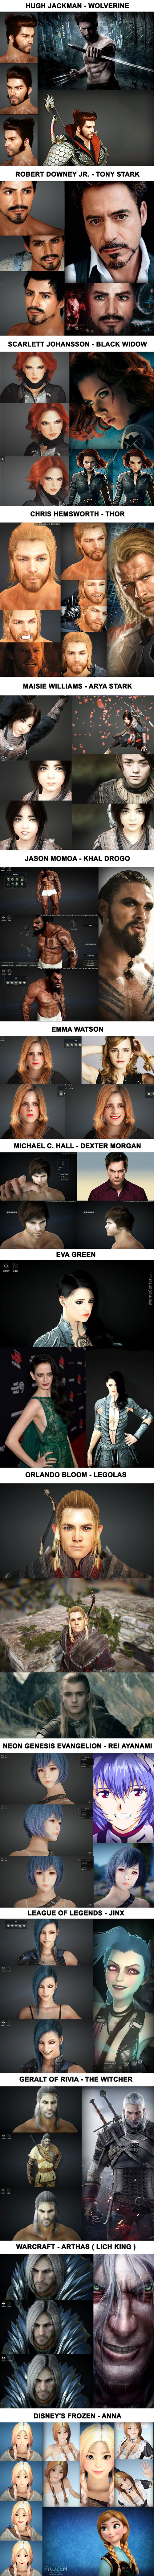 """Celebrities In """"black Desert Online"""", The Most Realistic Character Creation In A Mmorpg (Part 2)"""